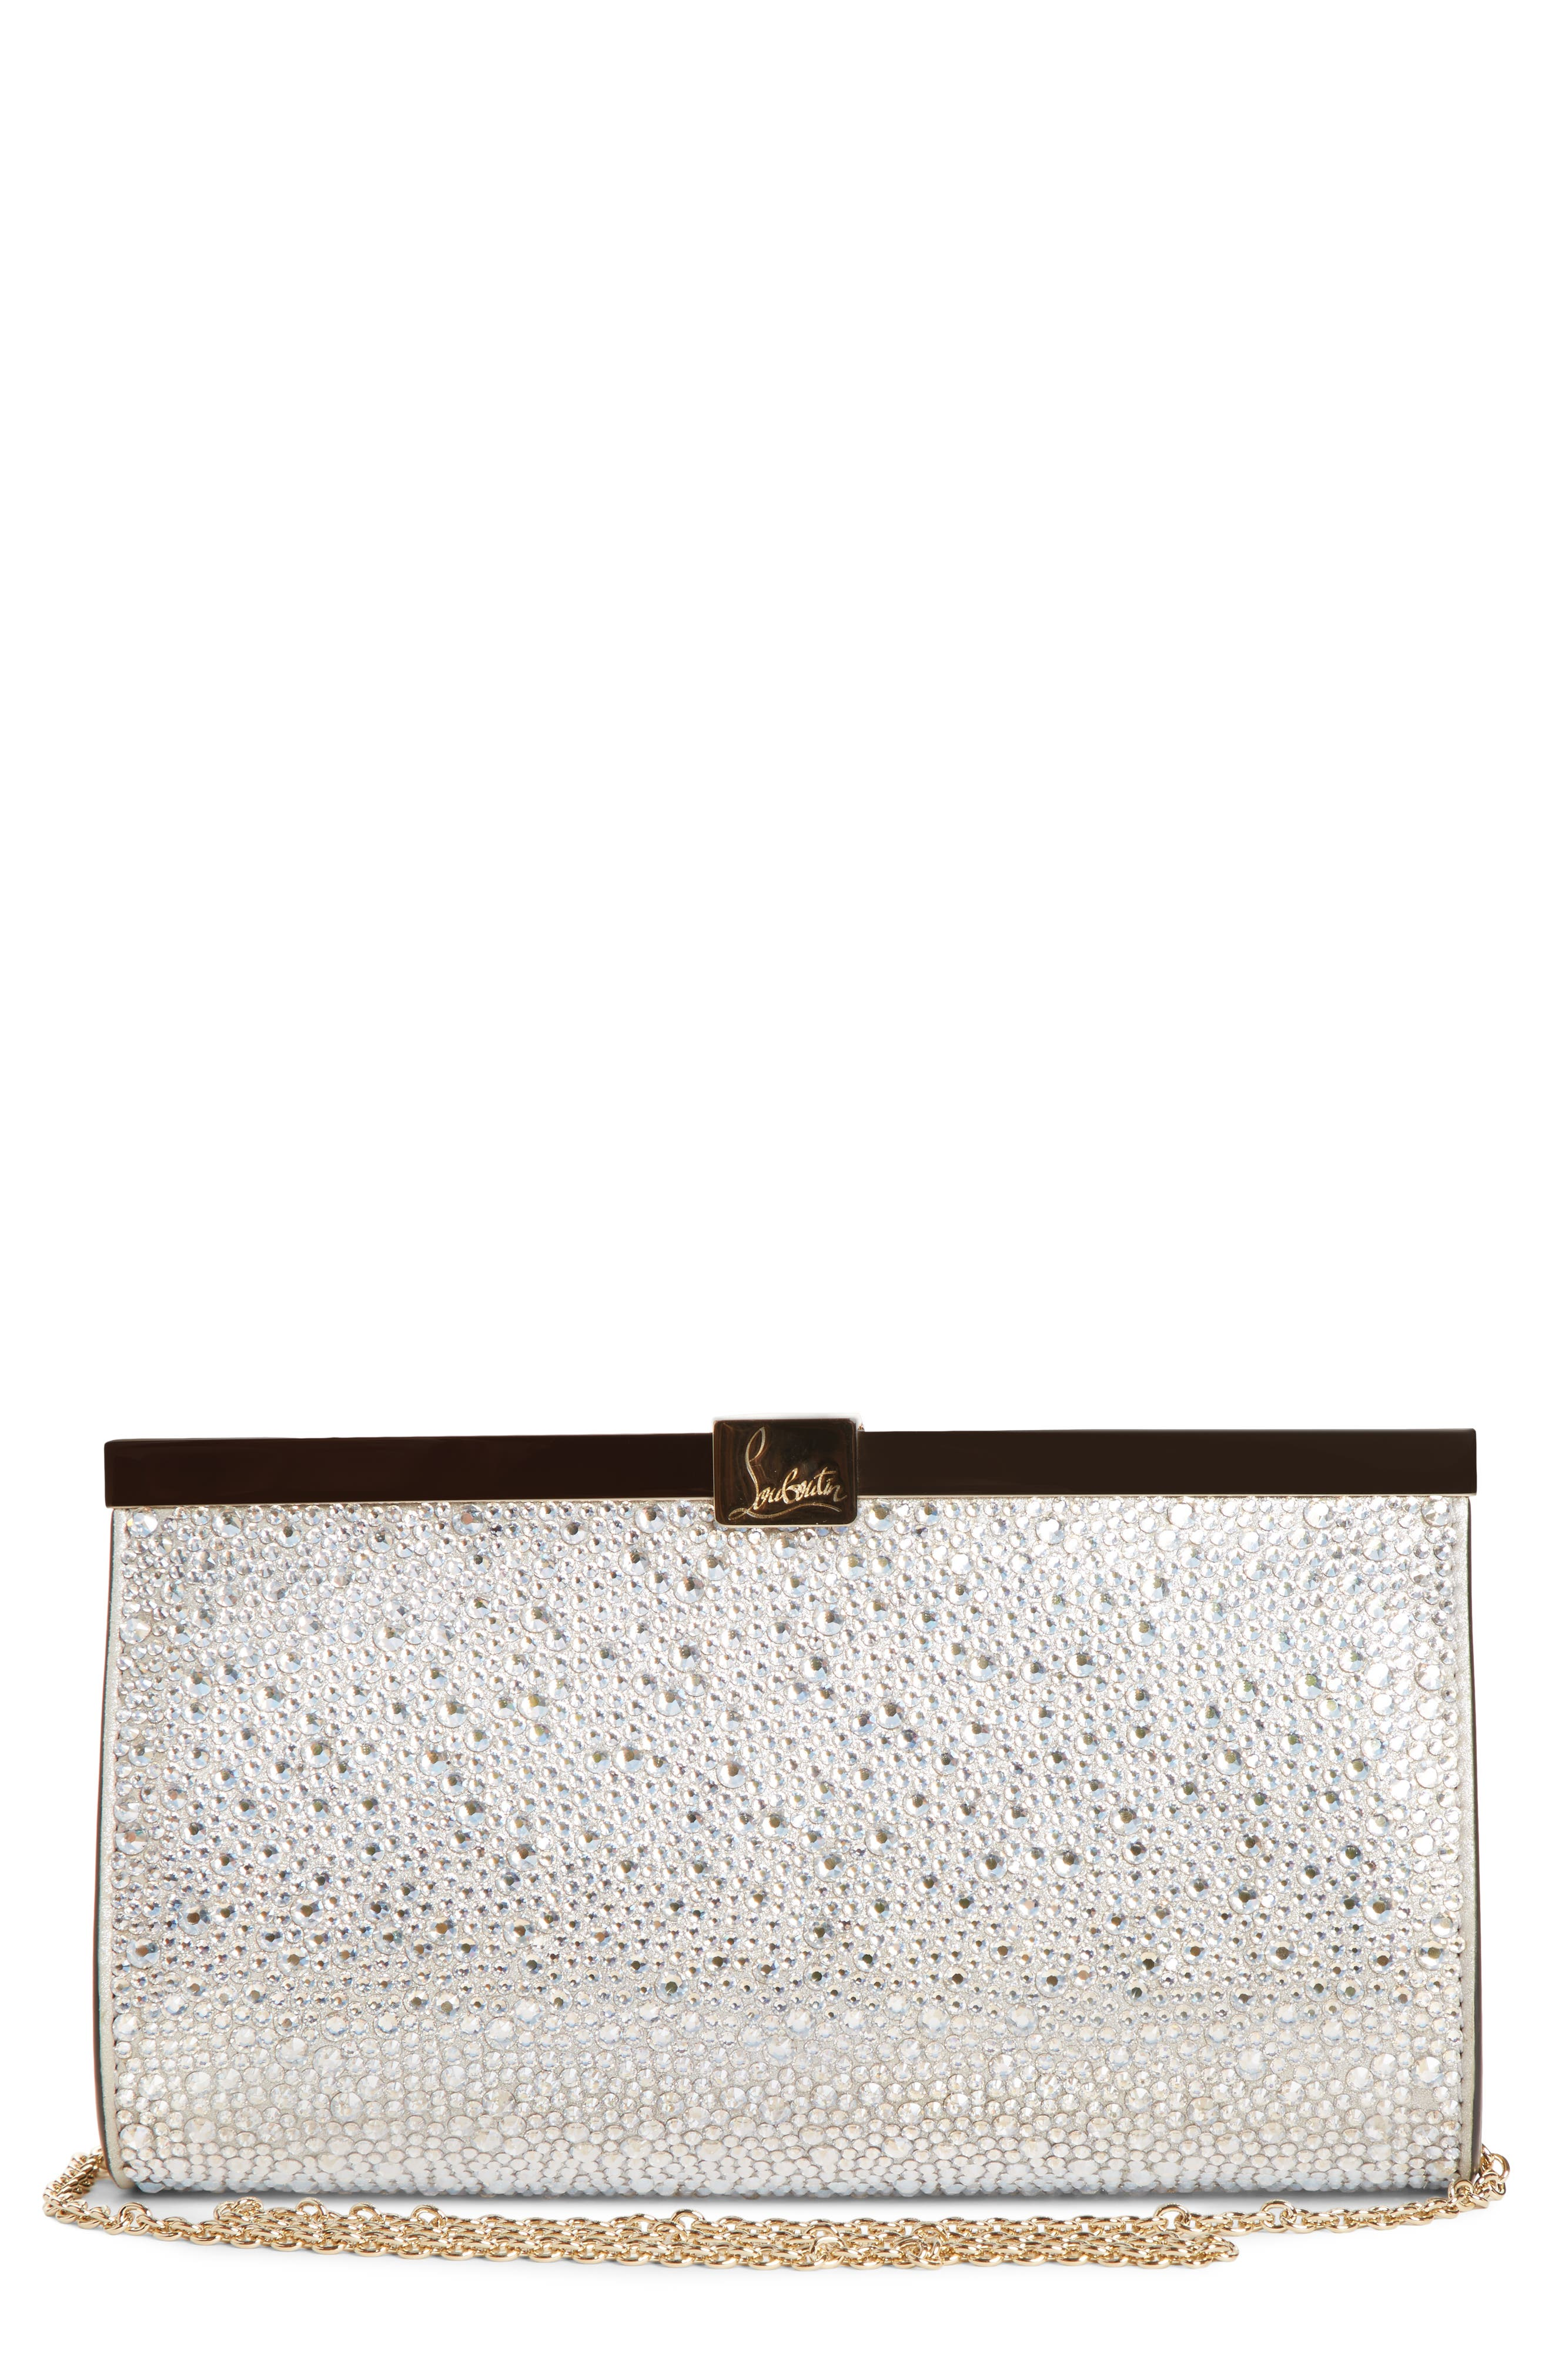 89a1844462 Christian Louboutin Small Palmette Crystal Embellished Clutch - Metallic